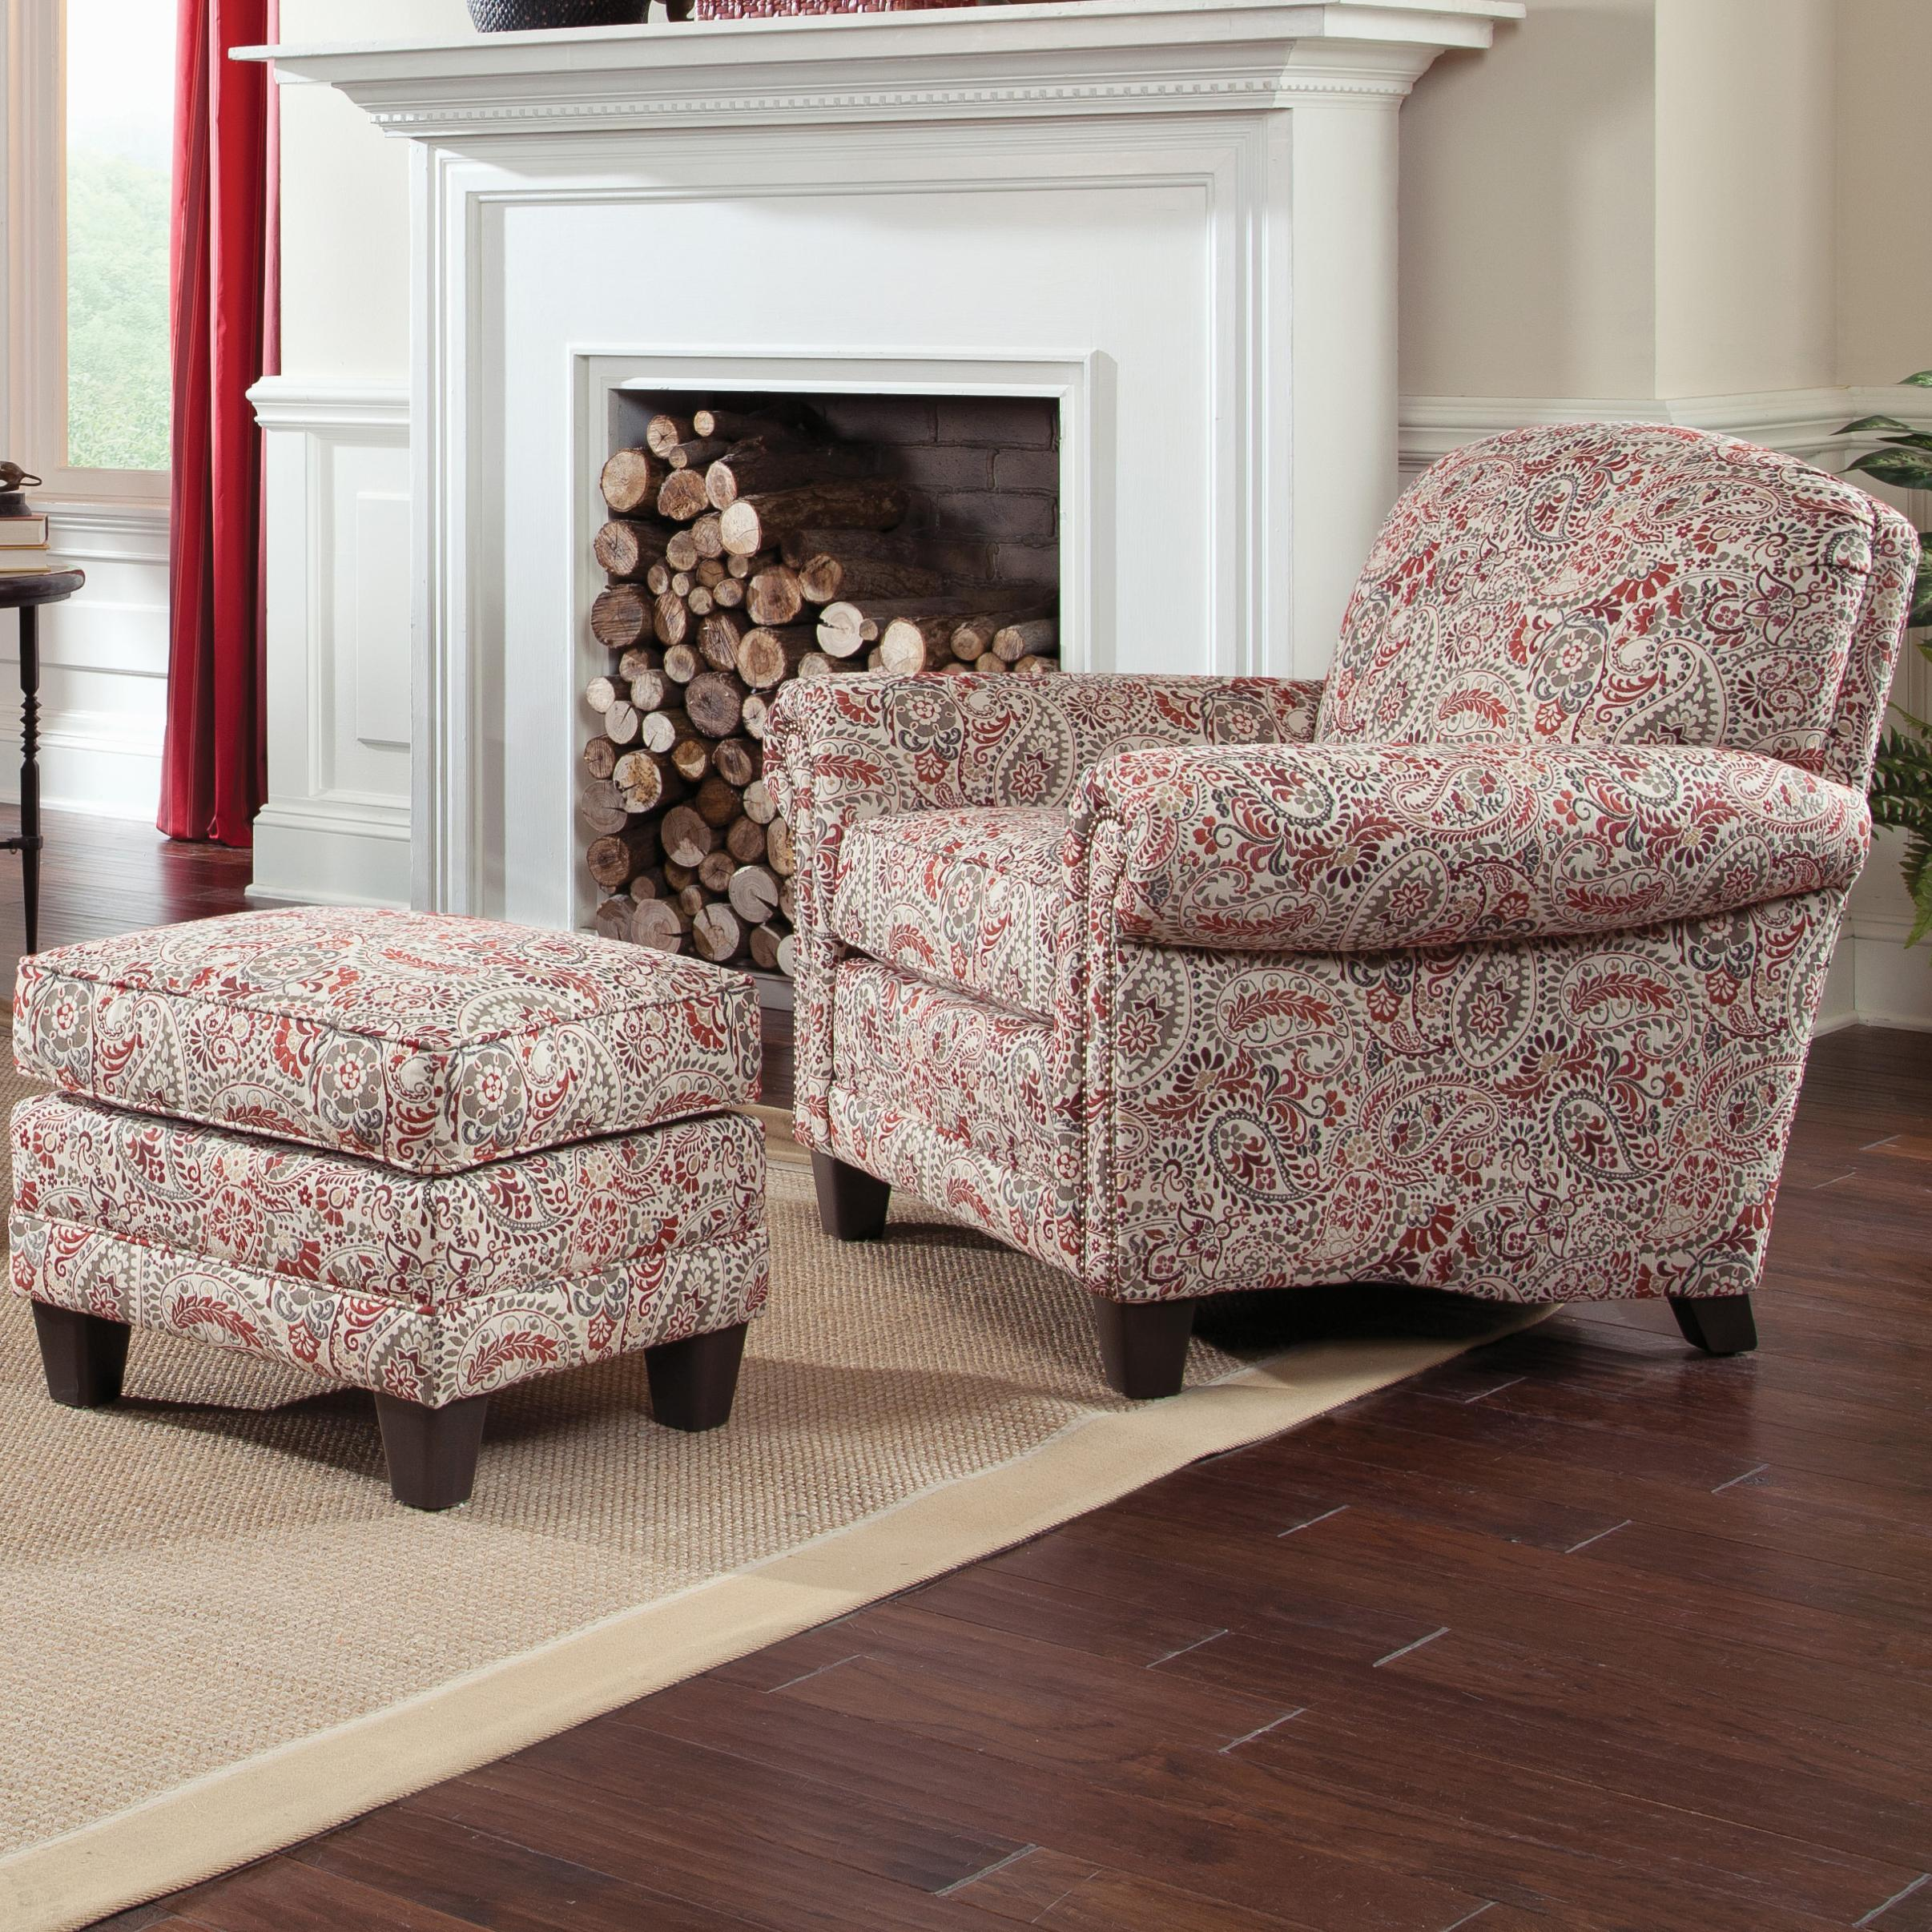 397 Chair and Ottman by Smith Brothers at Miller Home